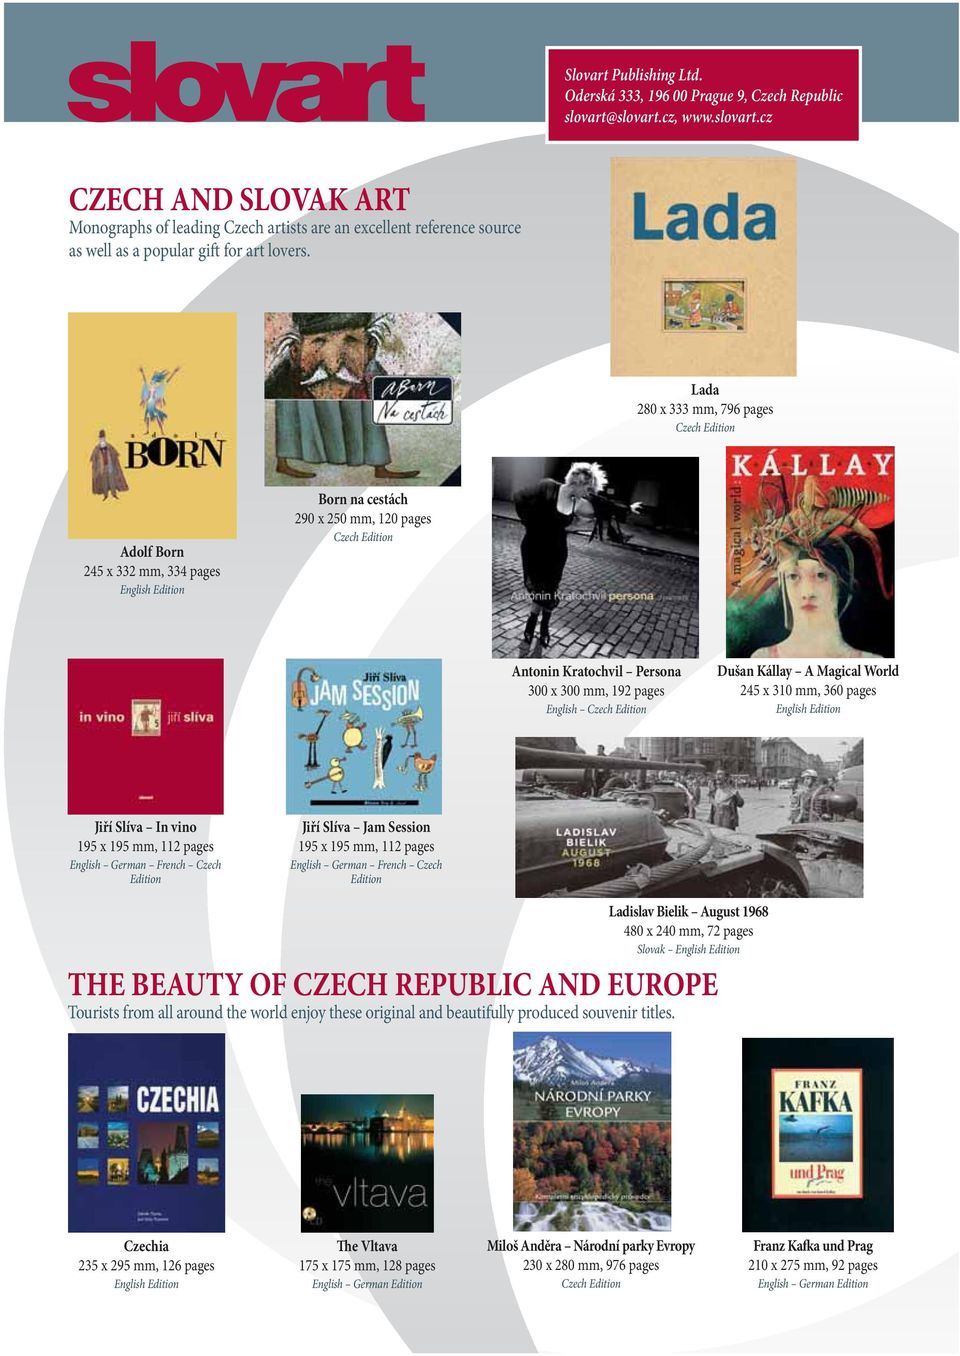 Lada 280 x 333 mm, 796 pages Czech Edition Adolf Born 245 x 332 mm, 334 pages English Edition Born na cestách 290 x 250 mm, 120 pages Czech Edition Antonin Kratochvil Persona 300 x 300 mm, 192 pages